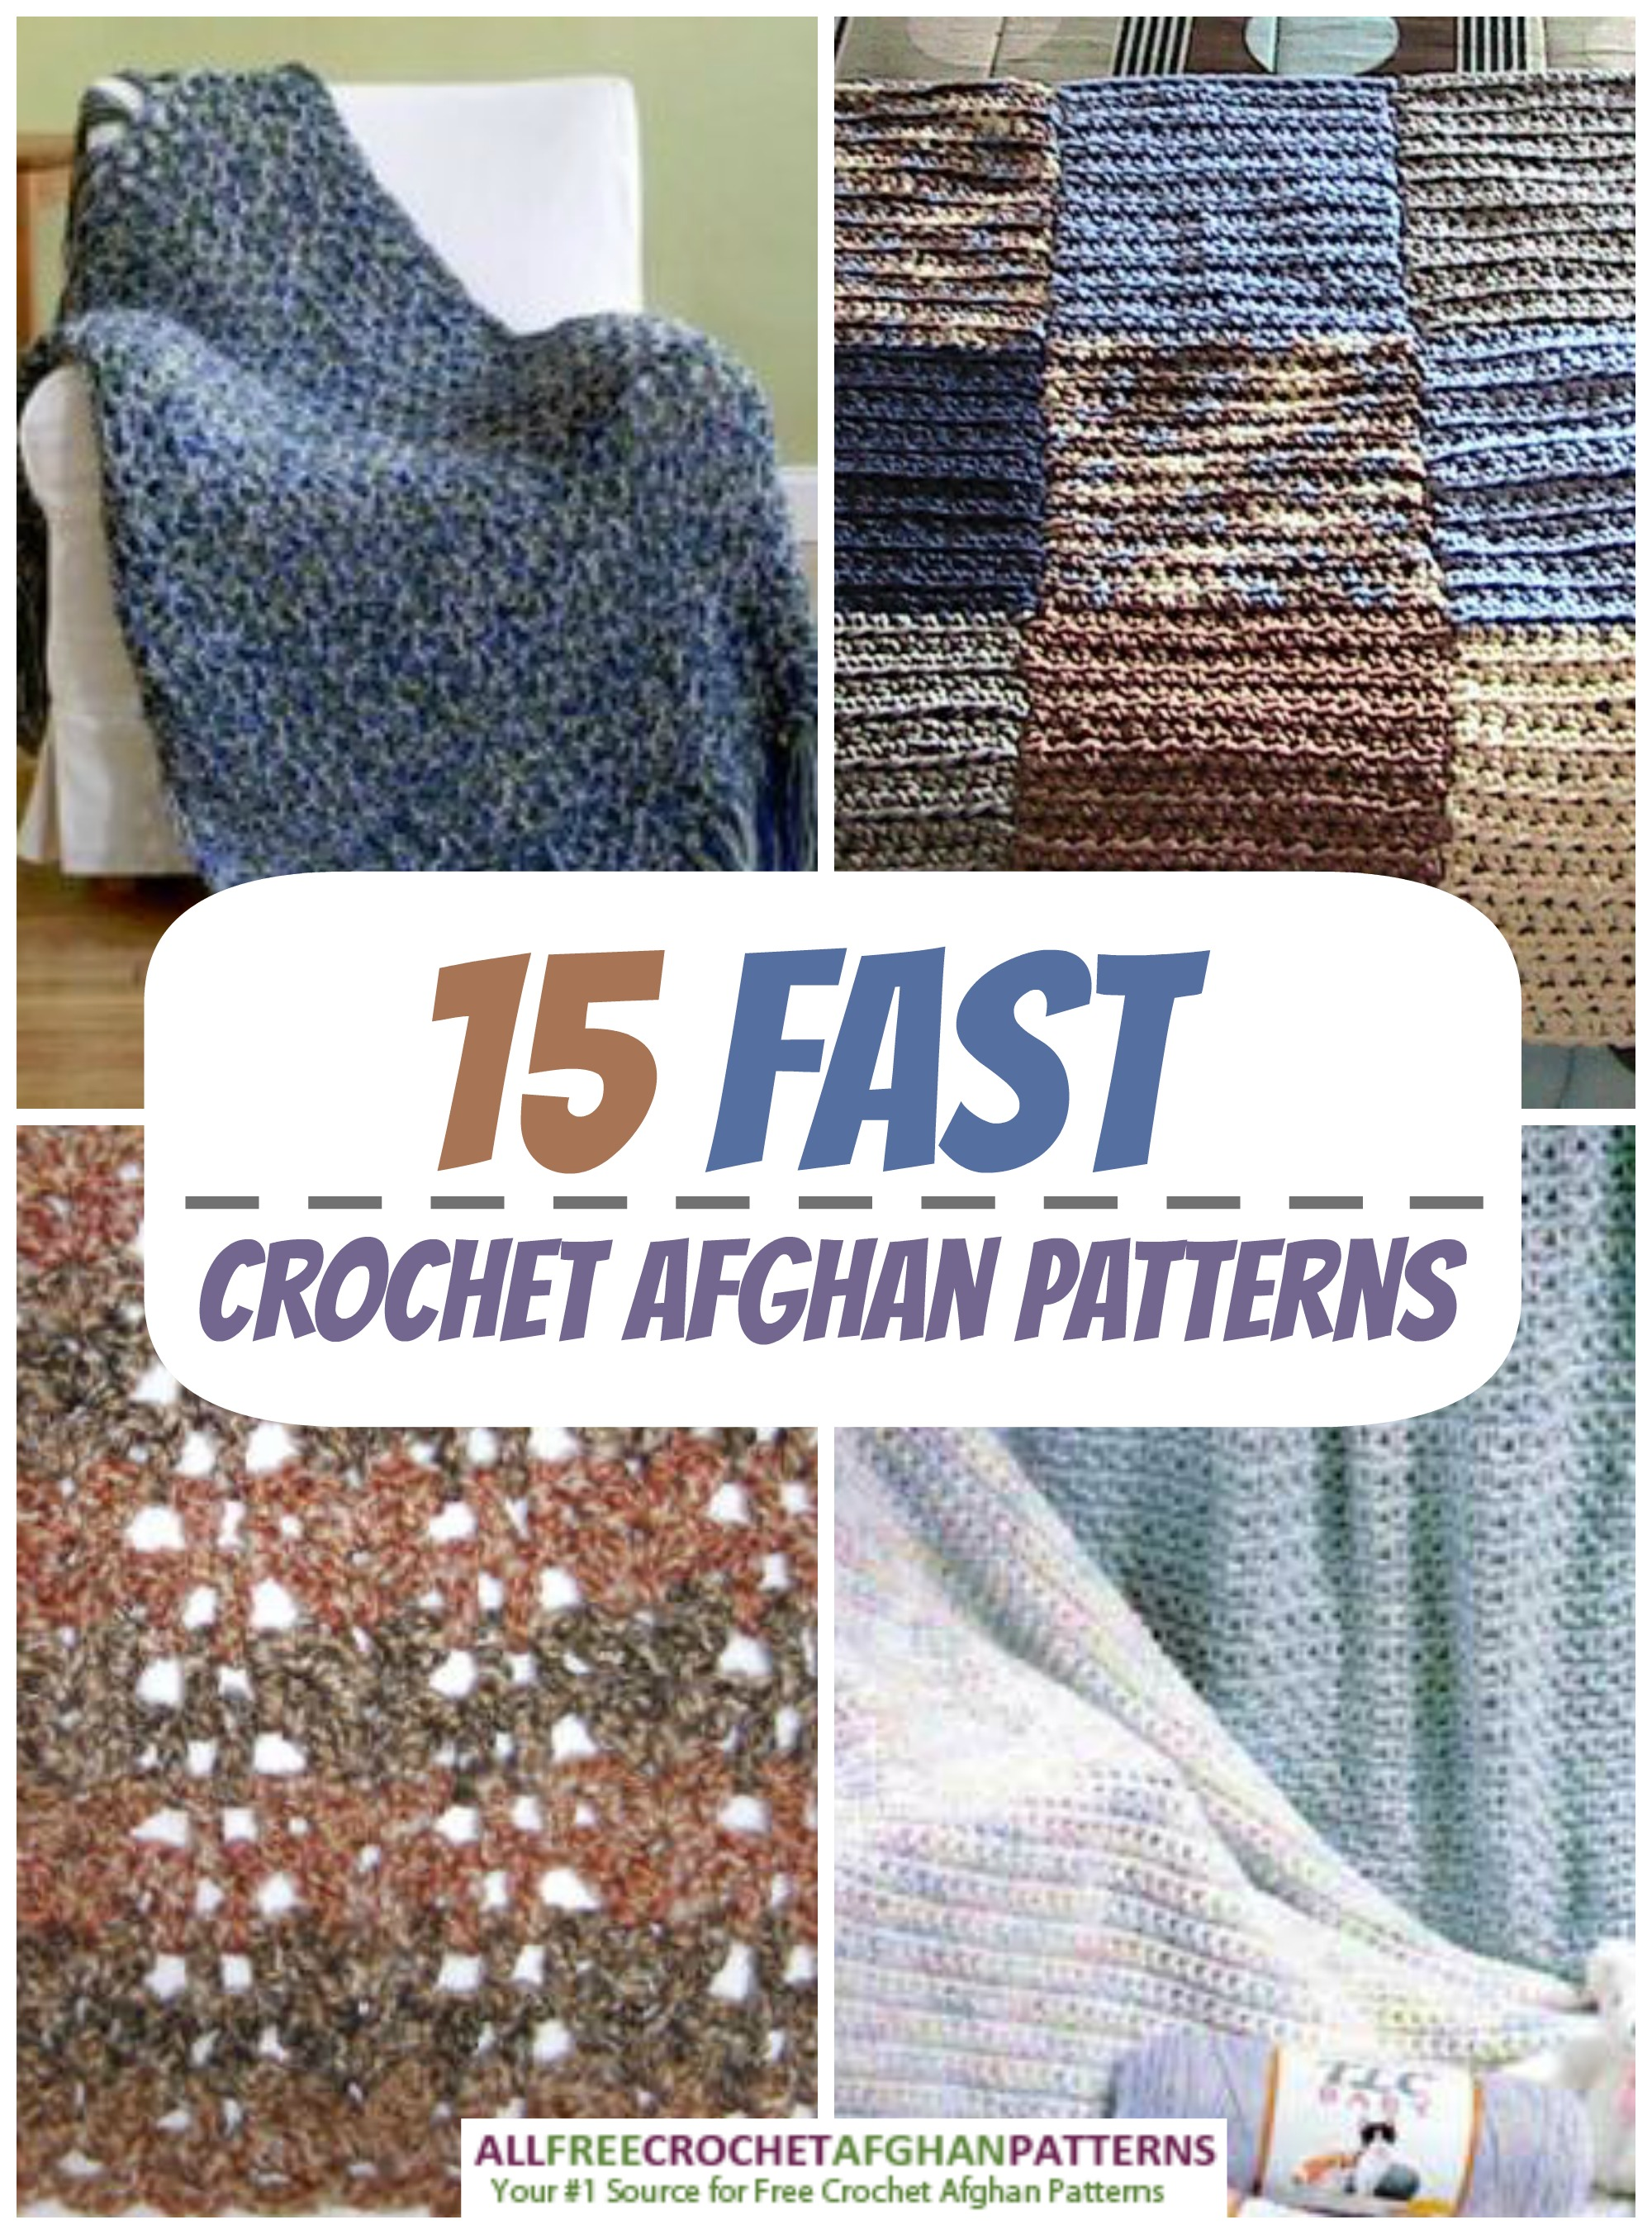 Amazingly Fast Crochet Afghan Patterns - Stitch and Unwind